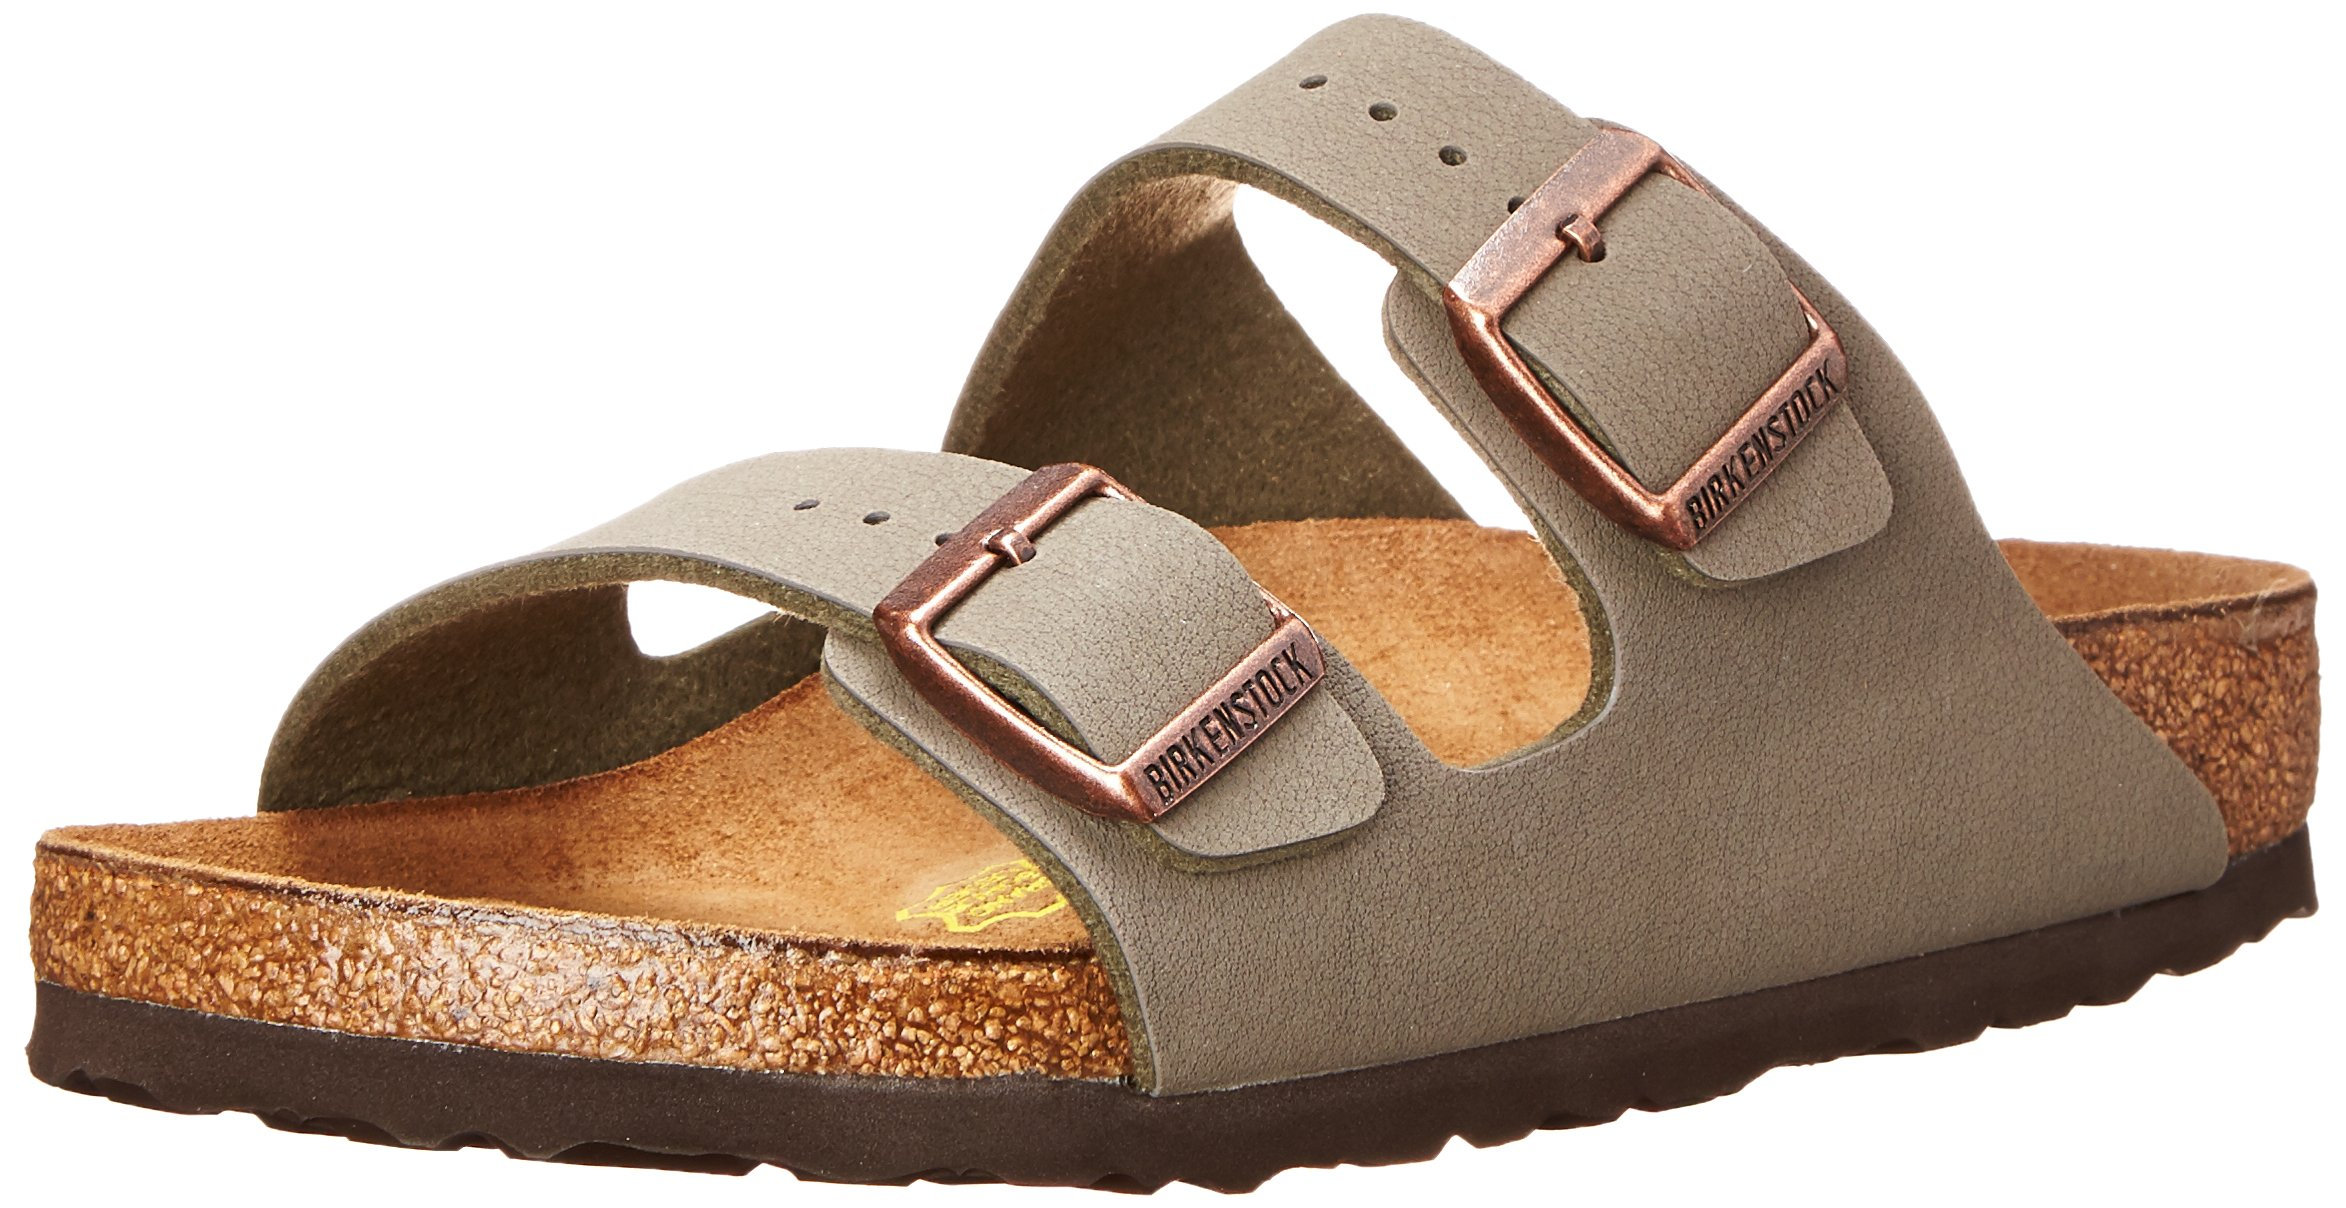 Birkenstock Arizona-Birkibuc(tm) (Unisex), Stone Birkibuc&Trade 35 (US Women's 4-4.5) Regular by Birkenstock (Image #1)